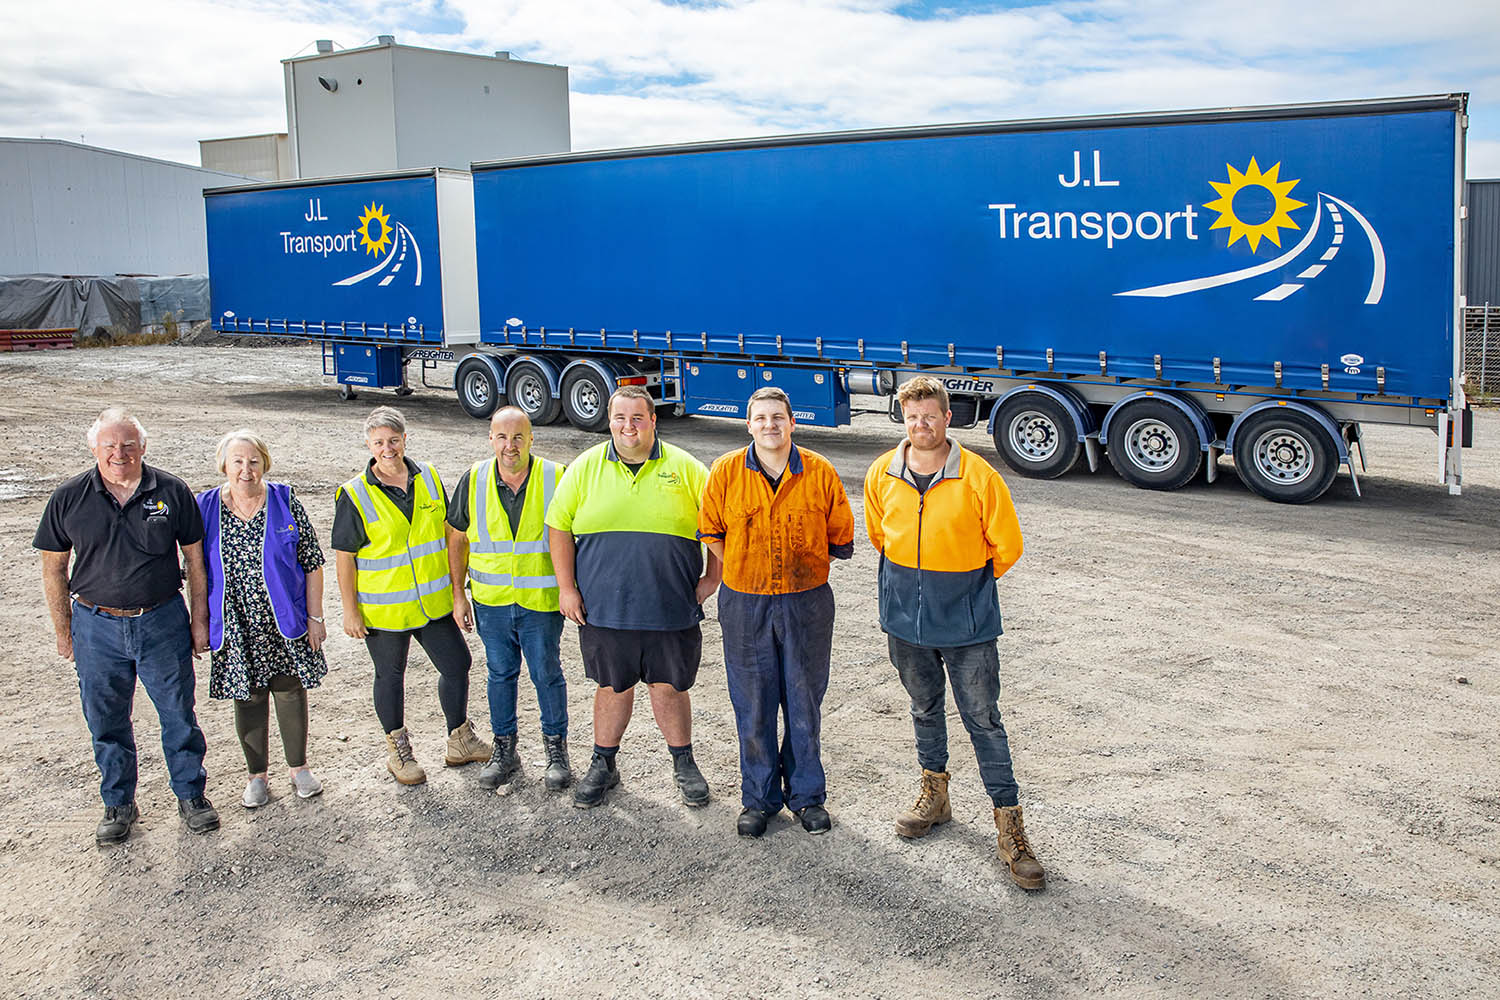 JL Transport family run business with Freighter semi trailers